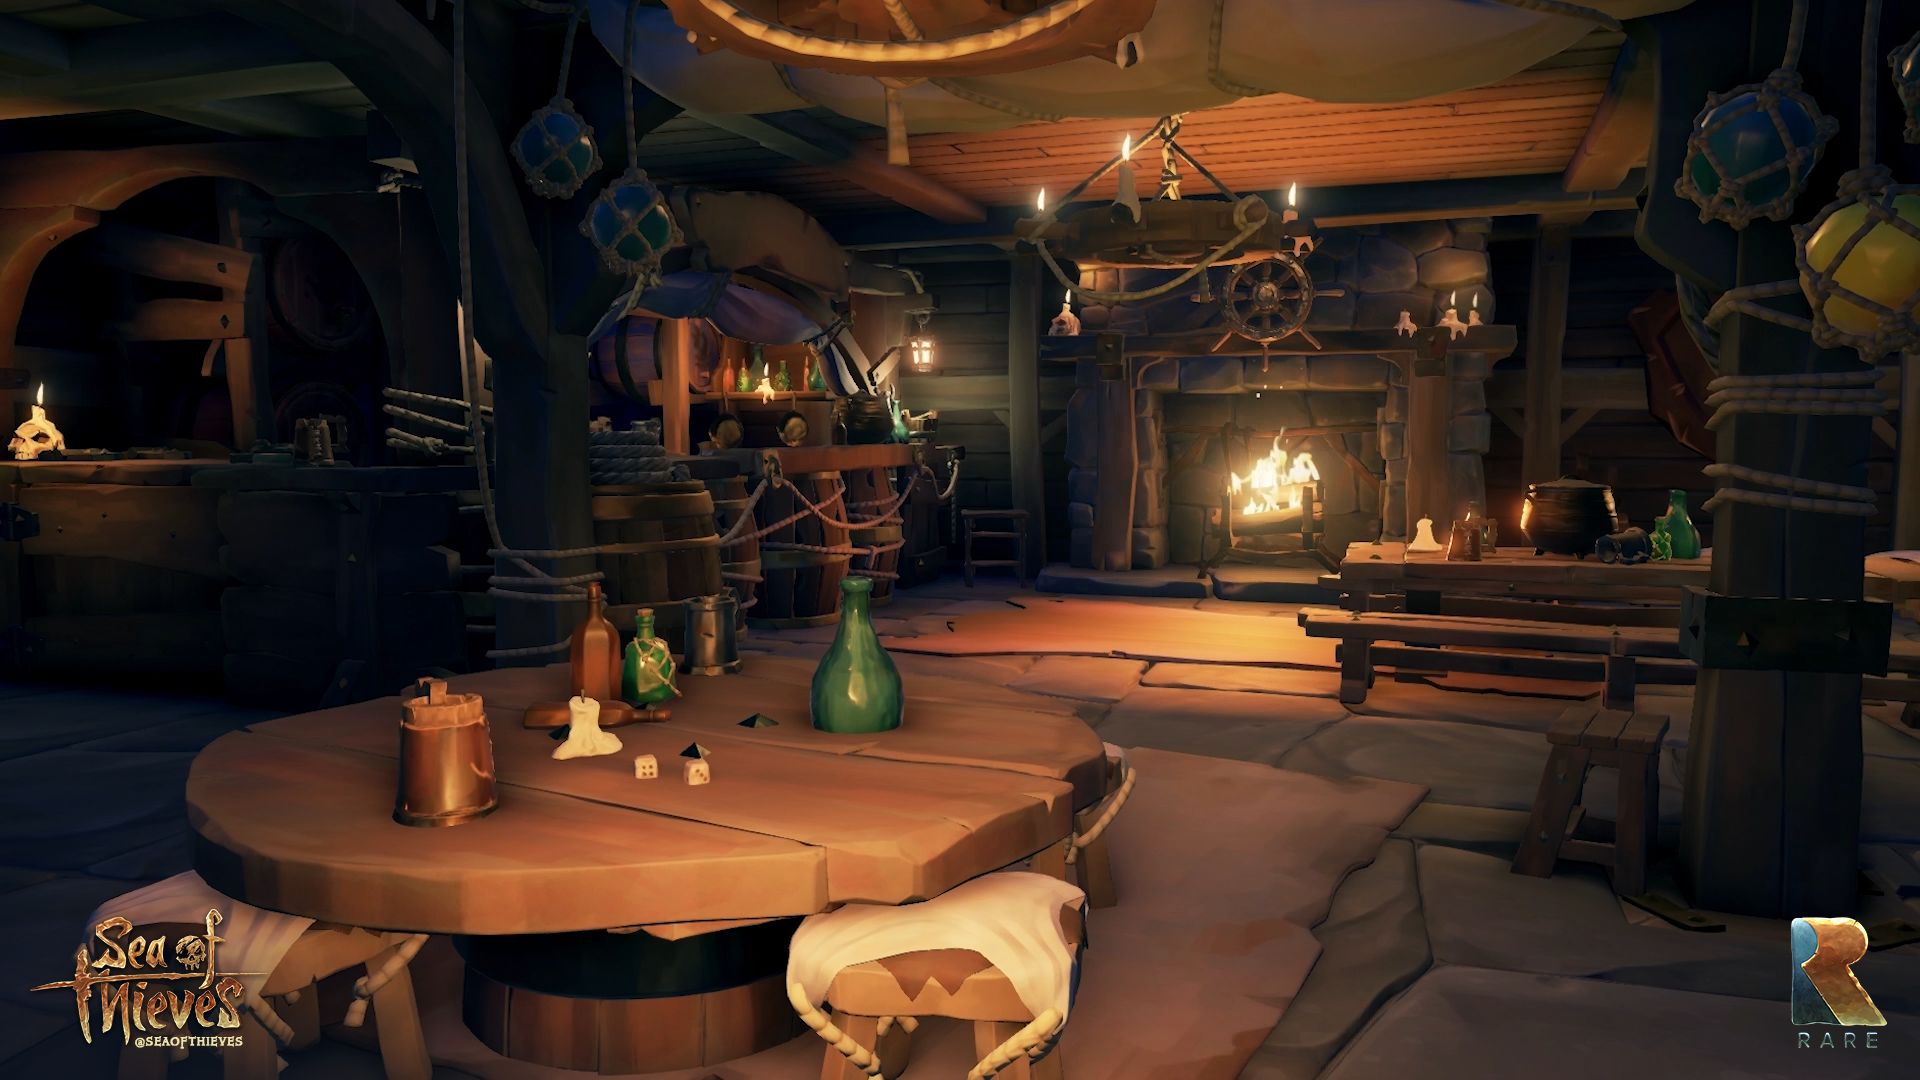 https://www.gamelegends.it/wp-content/uploads/2016/08/sea-of-thieves_pc-4.jpg